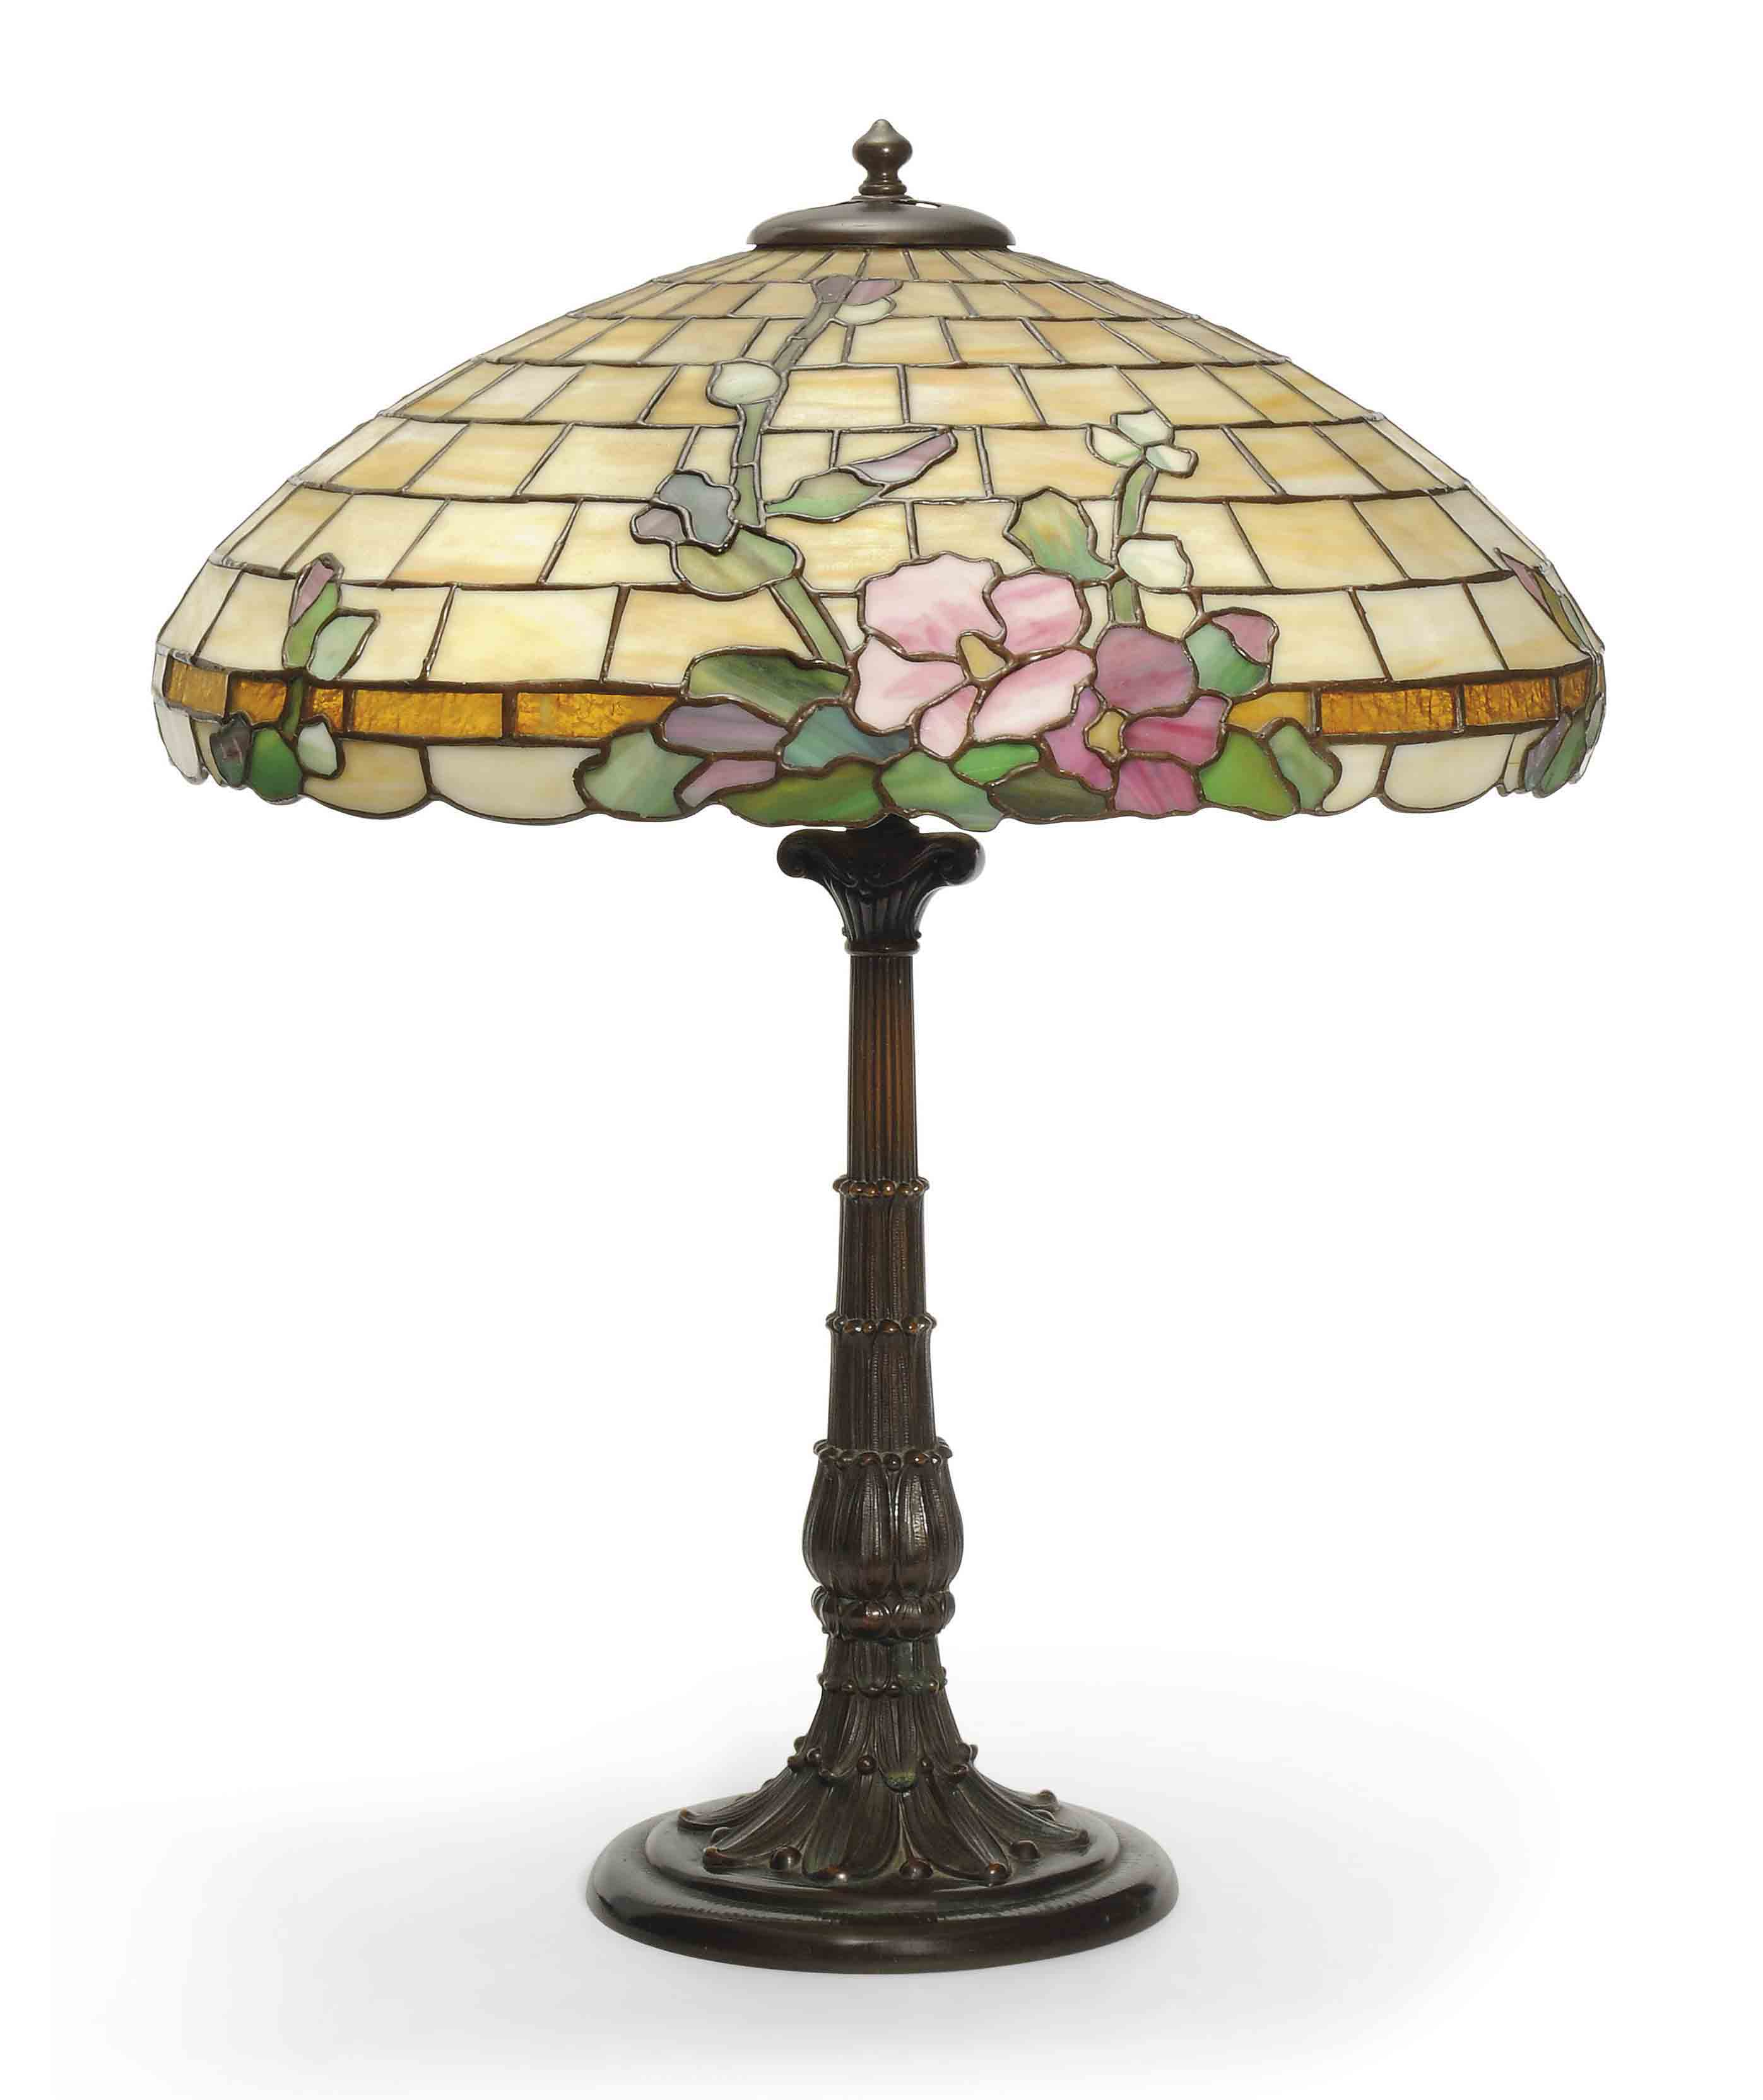 AN AMERICAN LEADED GLASS AND PATINATED METAL TABLE LAMP